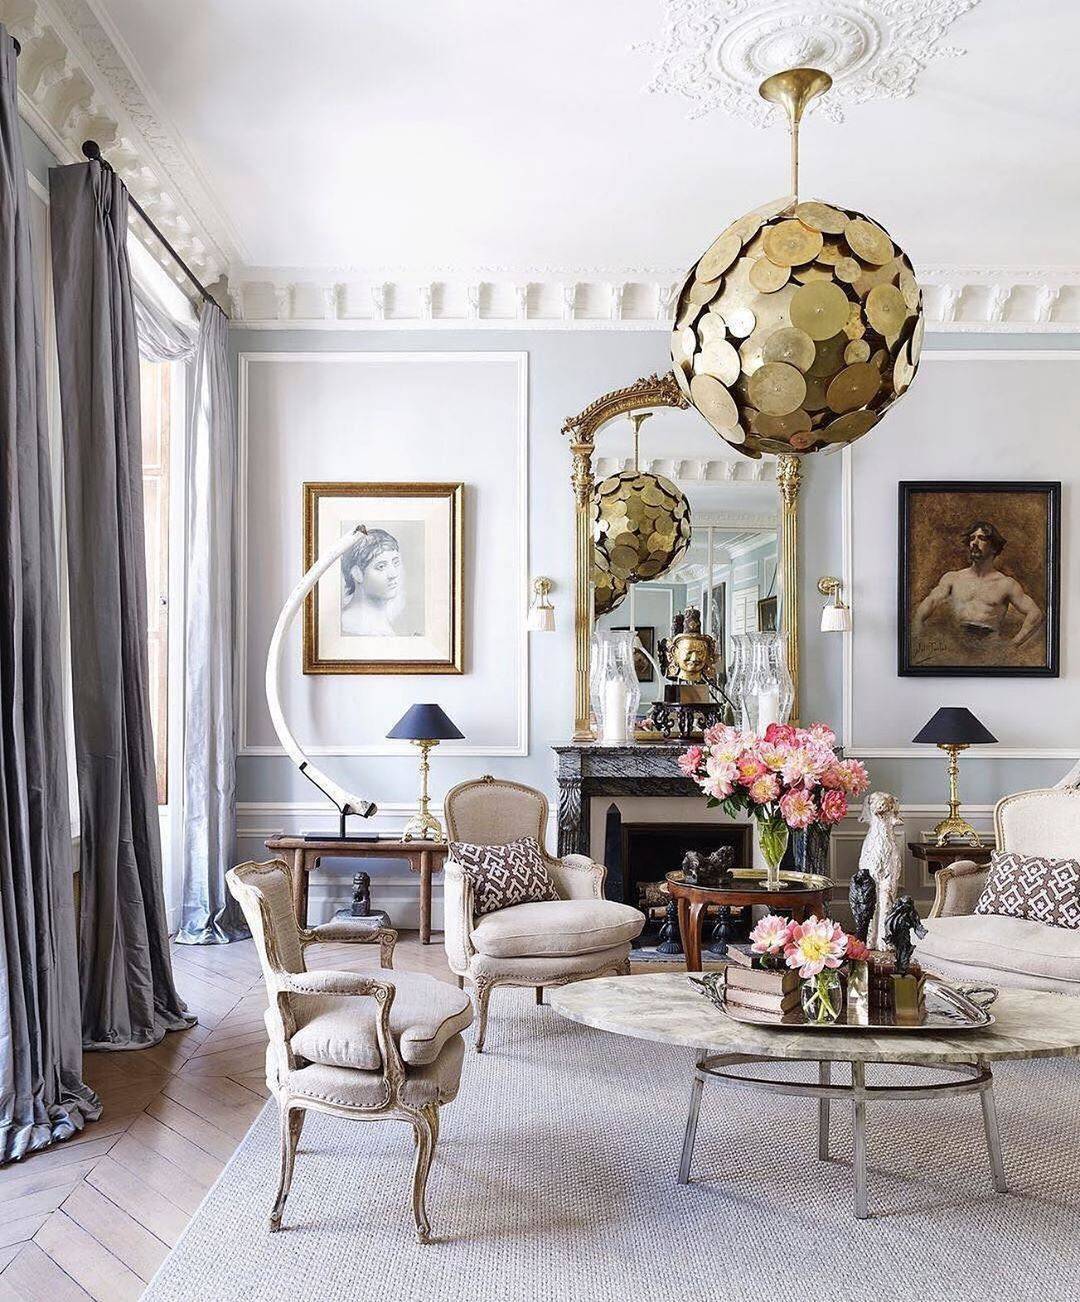 Step Inside The Living Room Of This Sophisticated Paris Pied A